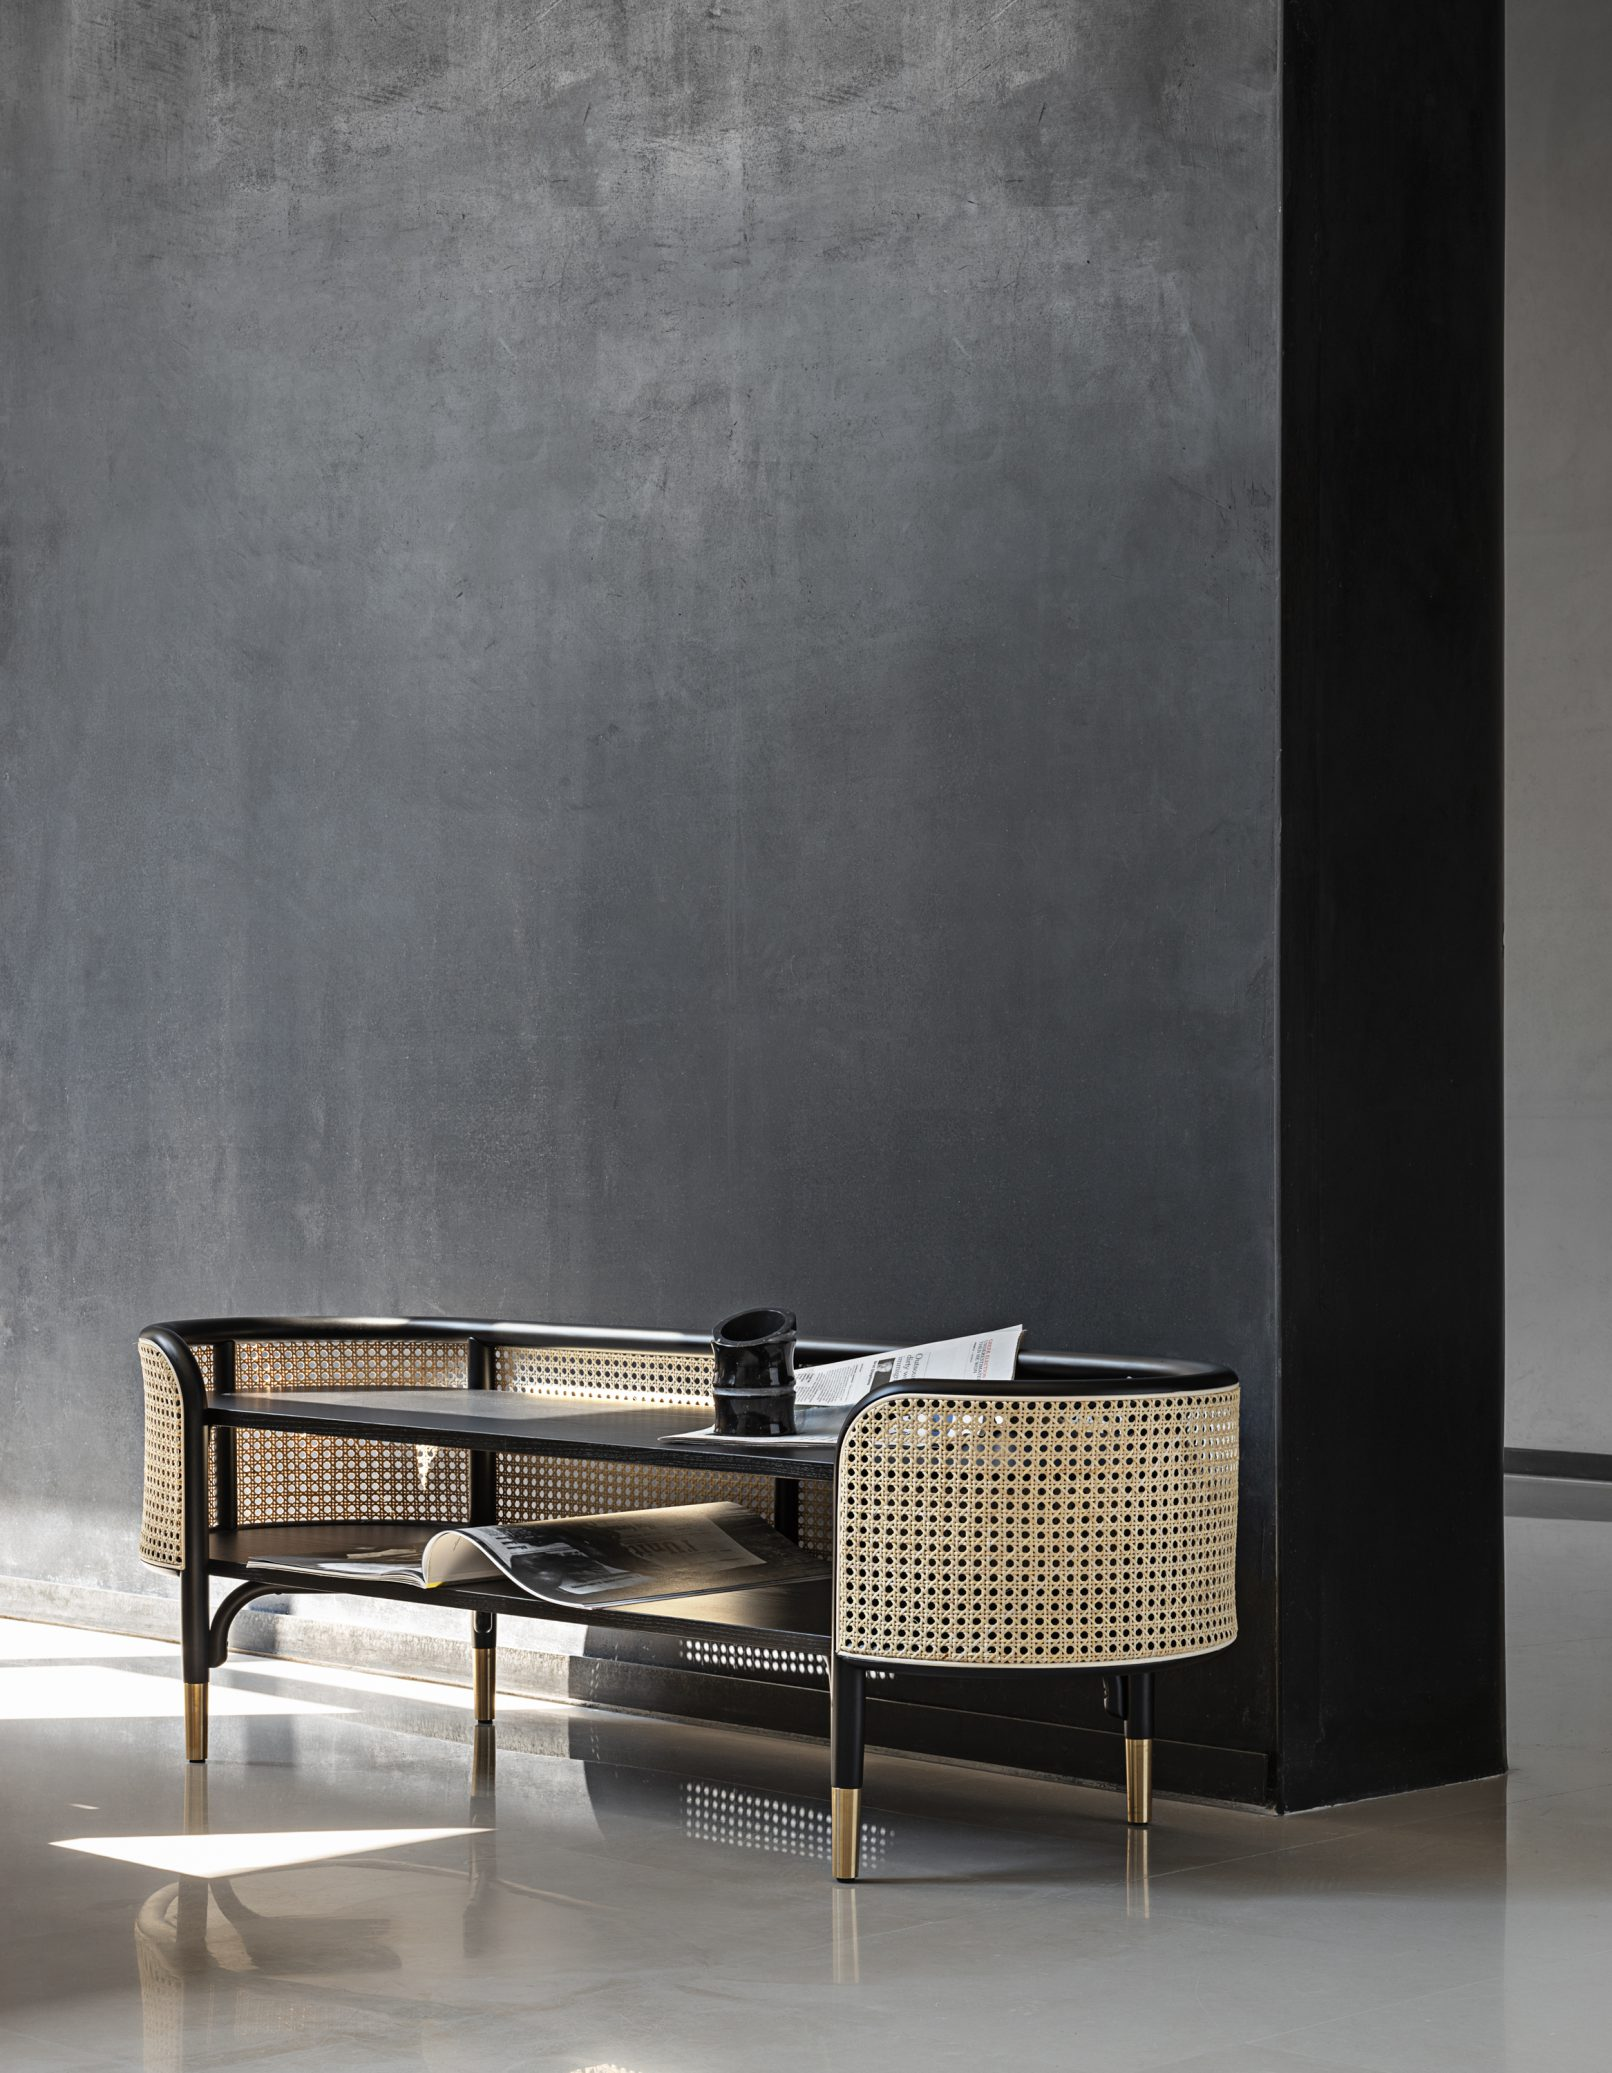 Mos Bench - Sleek and delicate, the Mos Bench comes into its own when you notice the attention to detail, such as the woven cane shell connecting the seat to the legs, accented with brass feet. Made from bent beechwood, the bench features open-pore painted ash, with an upholstered cushion. Also available with a shorter seat cushion and exposed bench surface. | Matter of Stuff